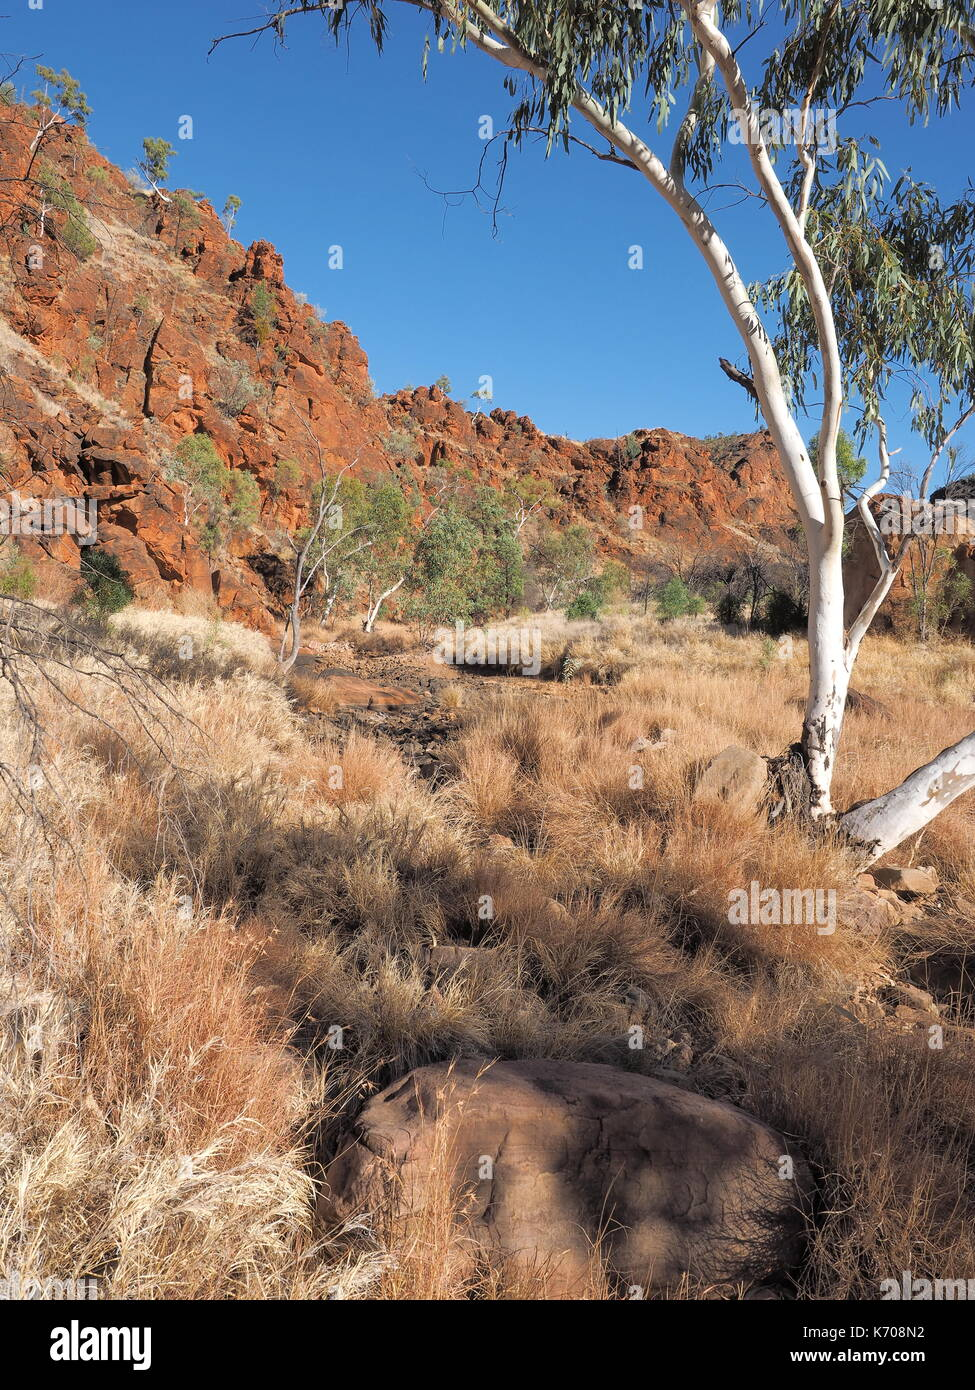 Remote N'Dhala Gorge near Ross River Station, east MacDonnell ranges , Alice Springs, Northern Territory, Australia 2017 - Stock Image